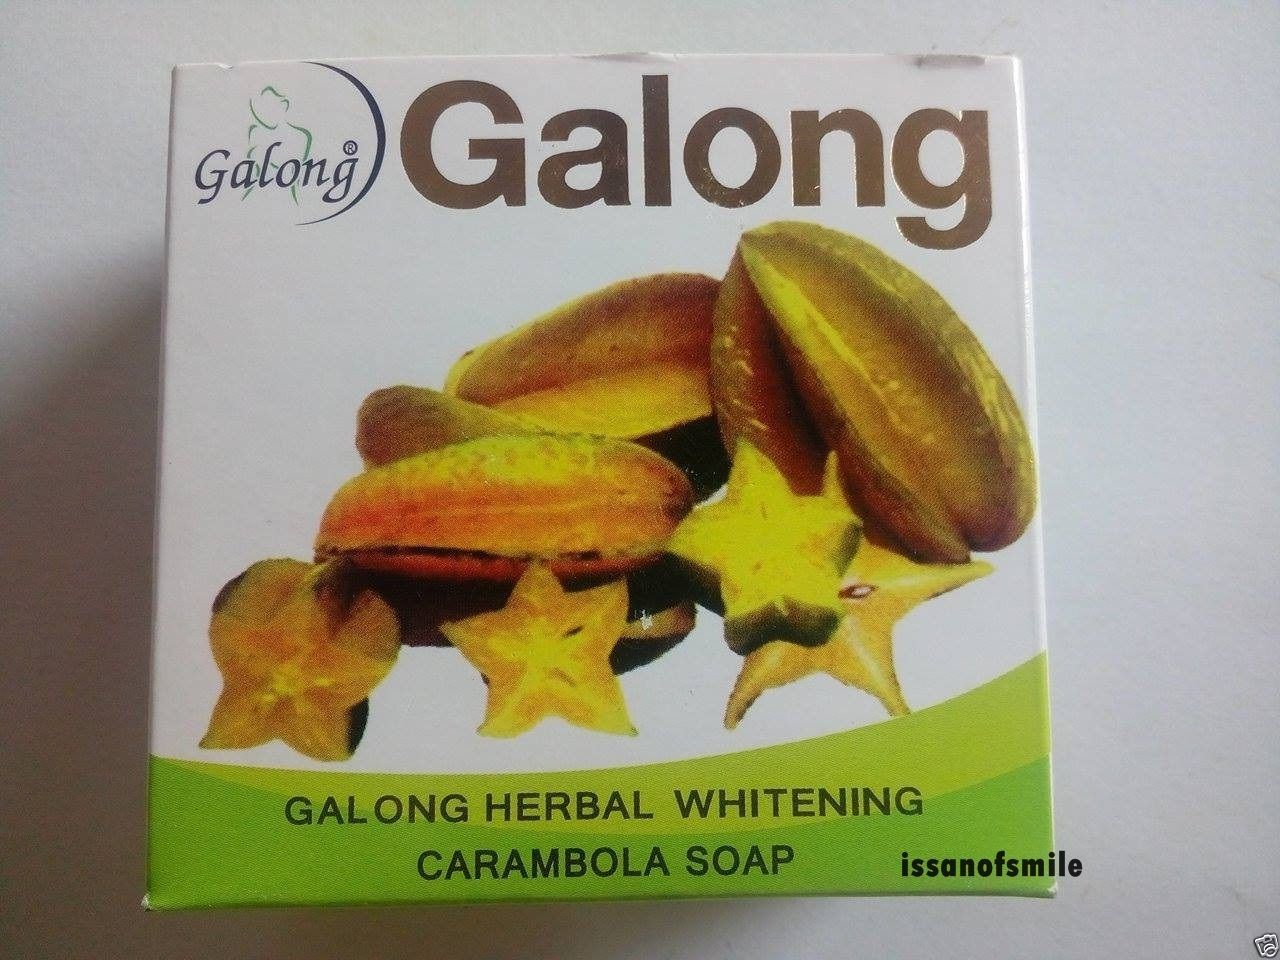 Galong Herbal Whitening Carambola Black Spots Blemishes Soap Cleansing 150g.